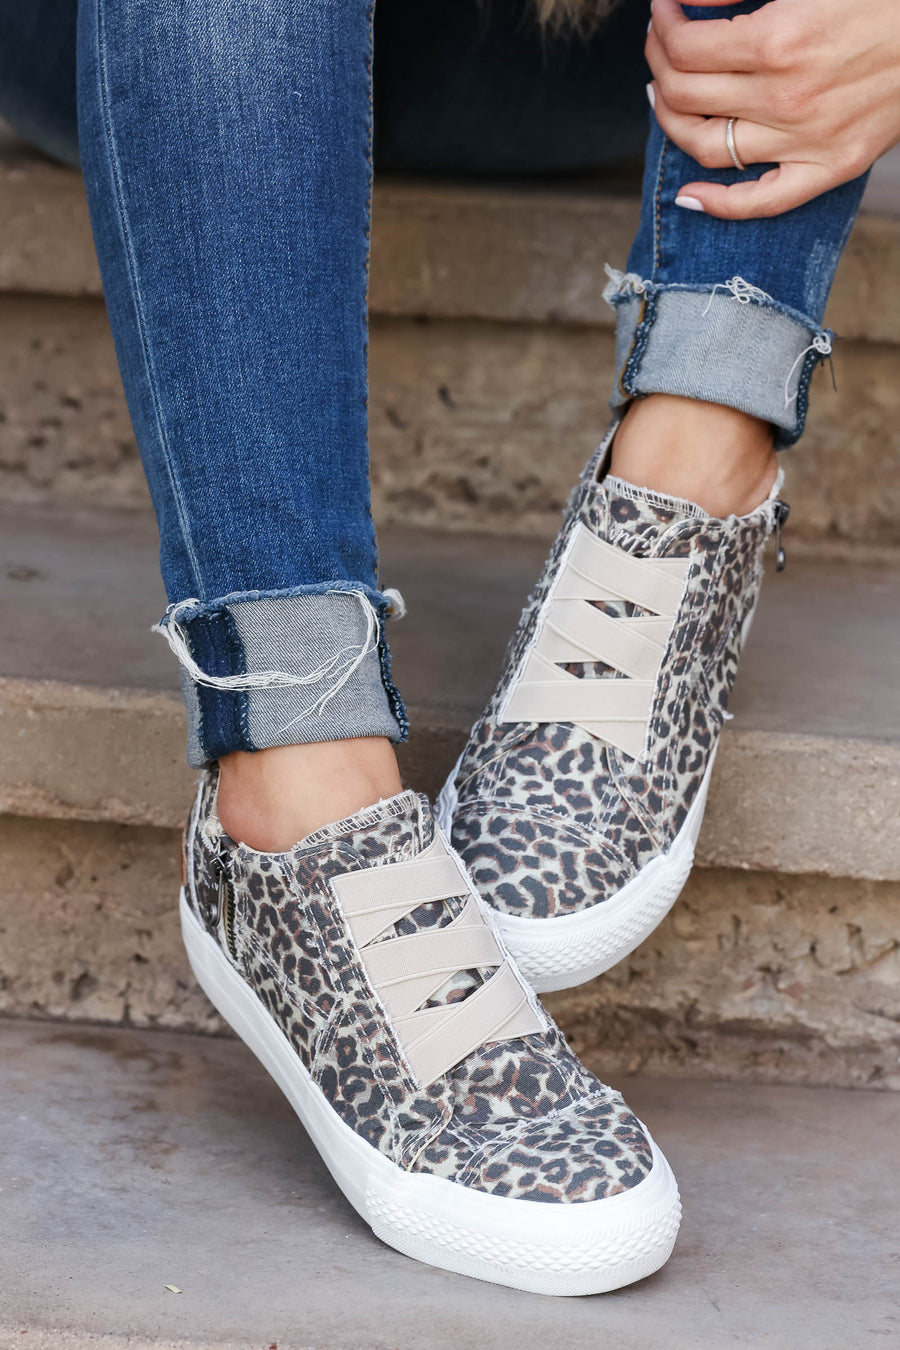 Walk That Way Wedge Sneaker - Vintage Leopard closet candy women's trendy animal print canvas wedge sneakers 1